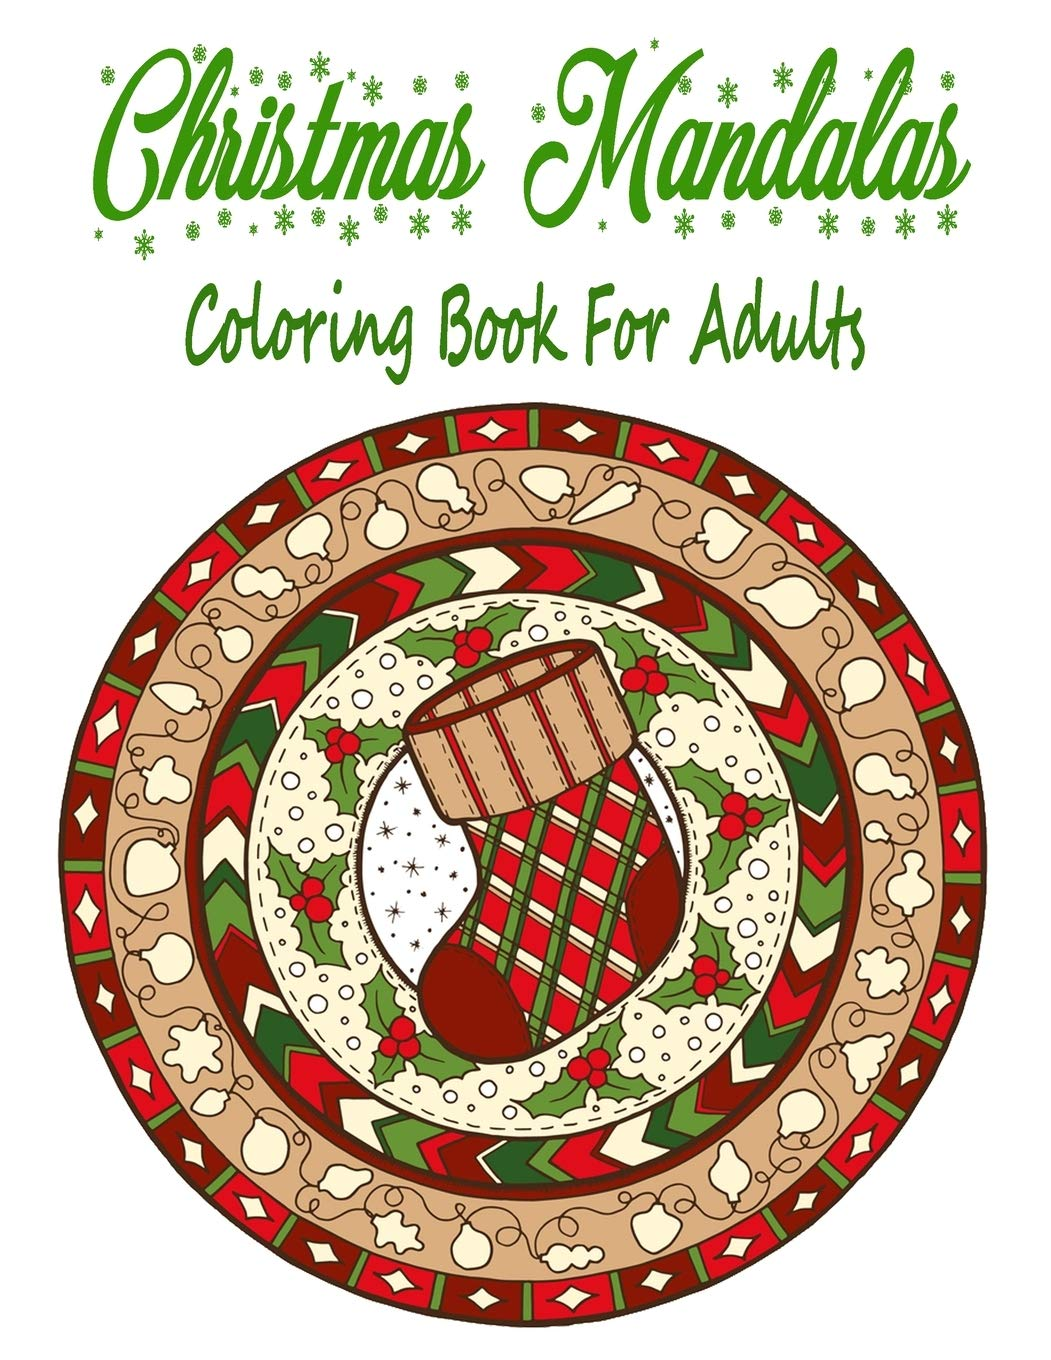 Amazon Com Christmas Mandalas Coloring Book For Adults 110 Unique Christmas Mandalas Coloring Pages Stress Relieving Christmas Mandala Designs For Adults 9798557109208 Williams Larry Books